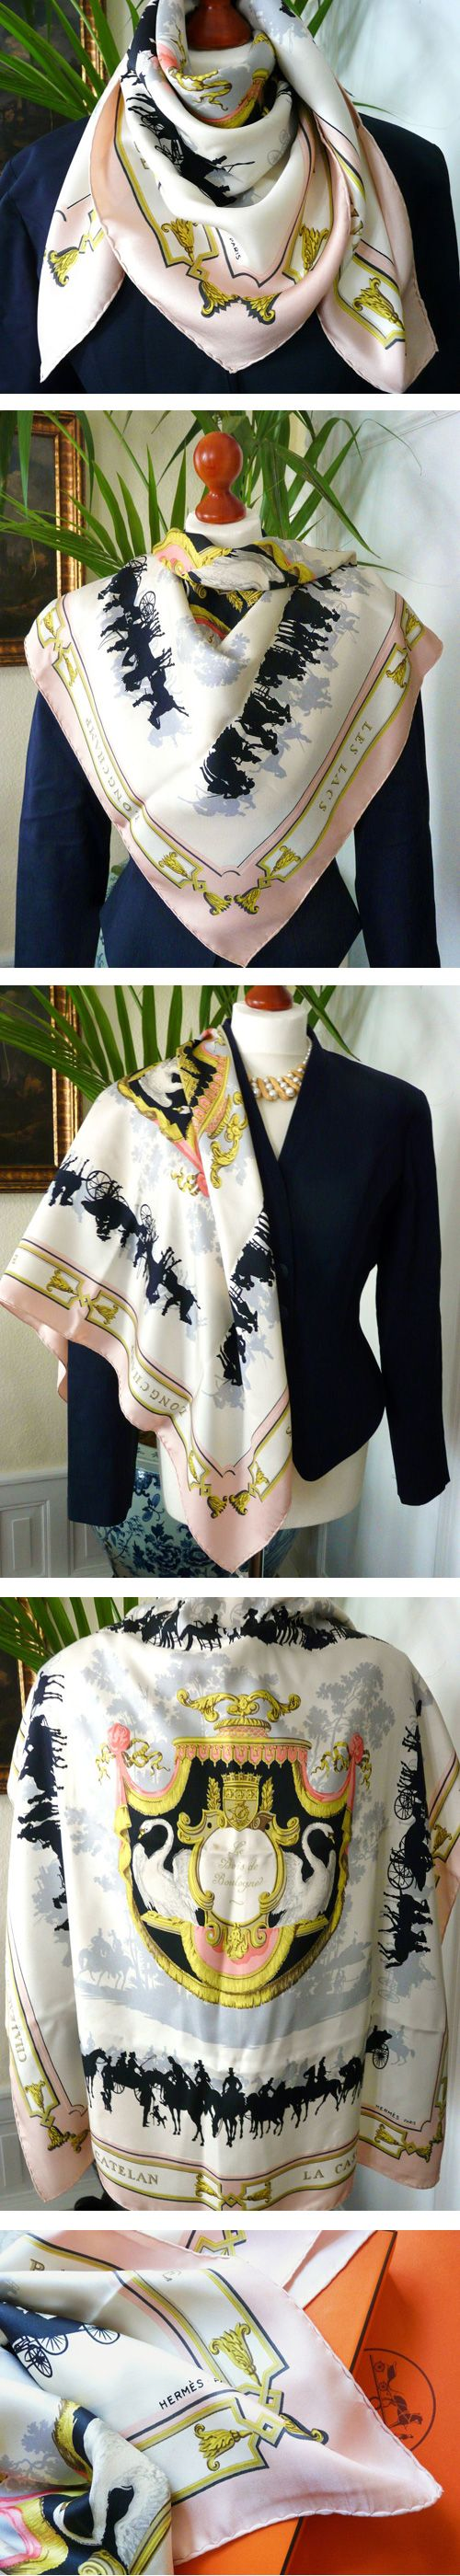 How to wear Hermes scarf Hermes Hermesscarf scarf howto wear Hermes Scarves How To Wear